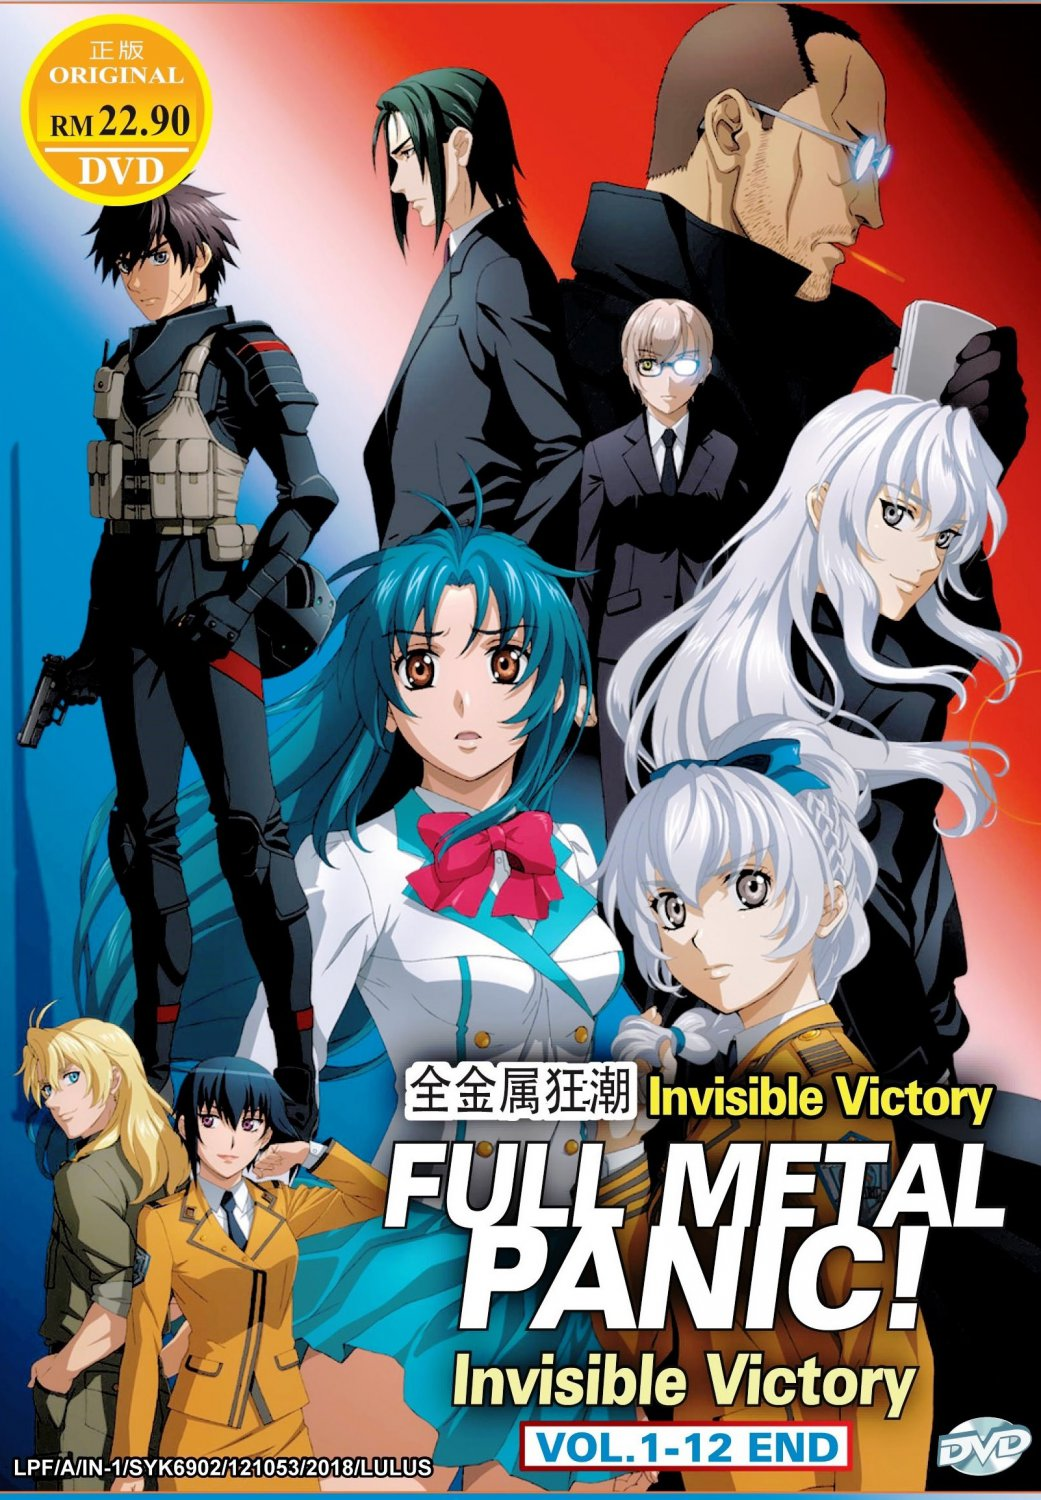 DVD Full Metal Panic Invisible Victory Vol.1-12 End Eng Dub Japanese Anime Eng Sub